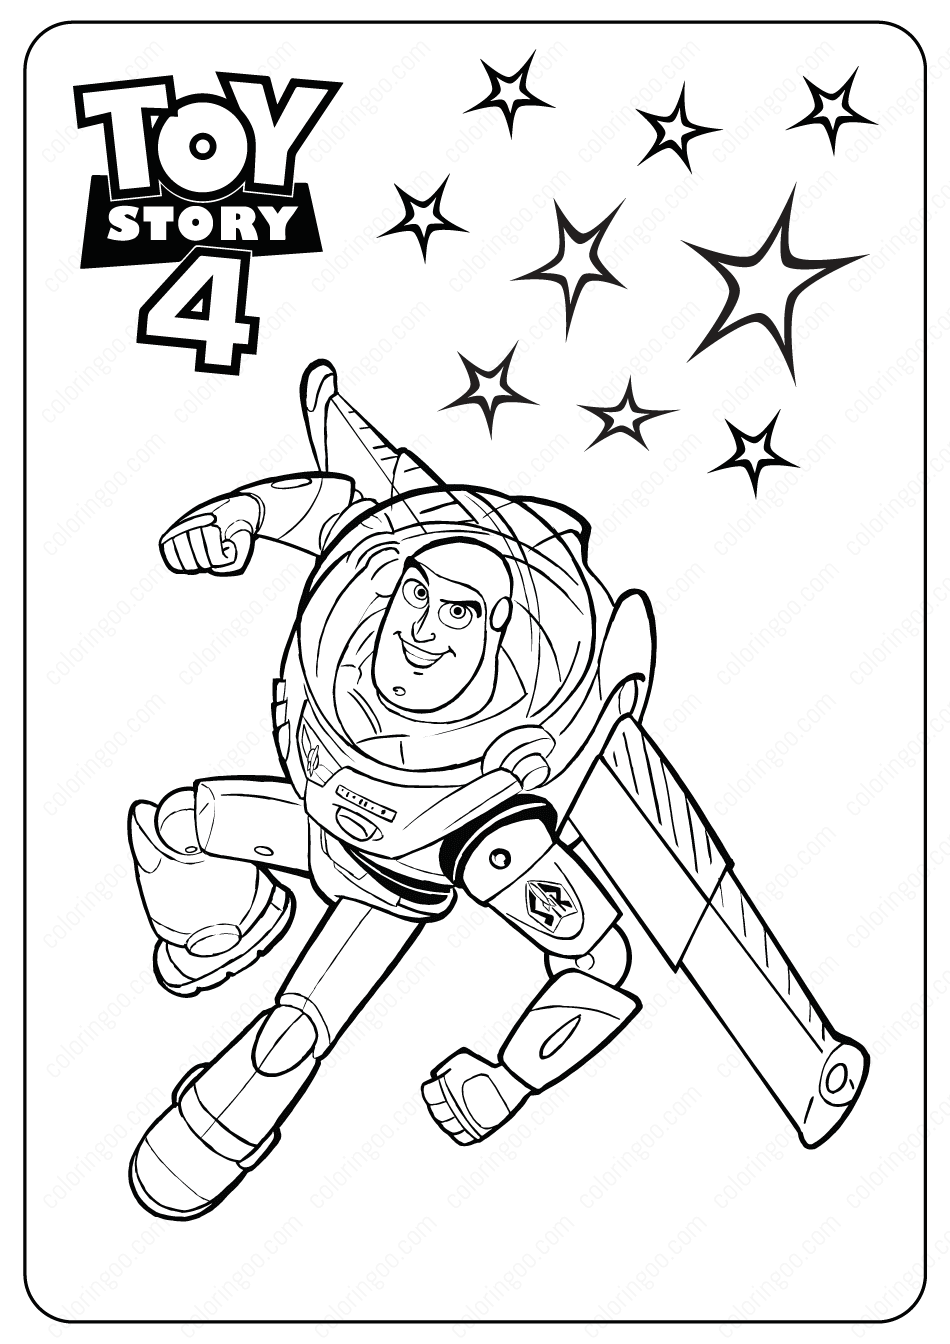 46++ Coloring sheet toy story coloring pages pdf ideas in 2021